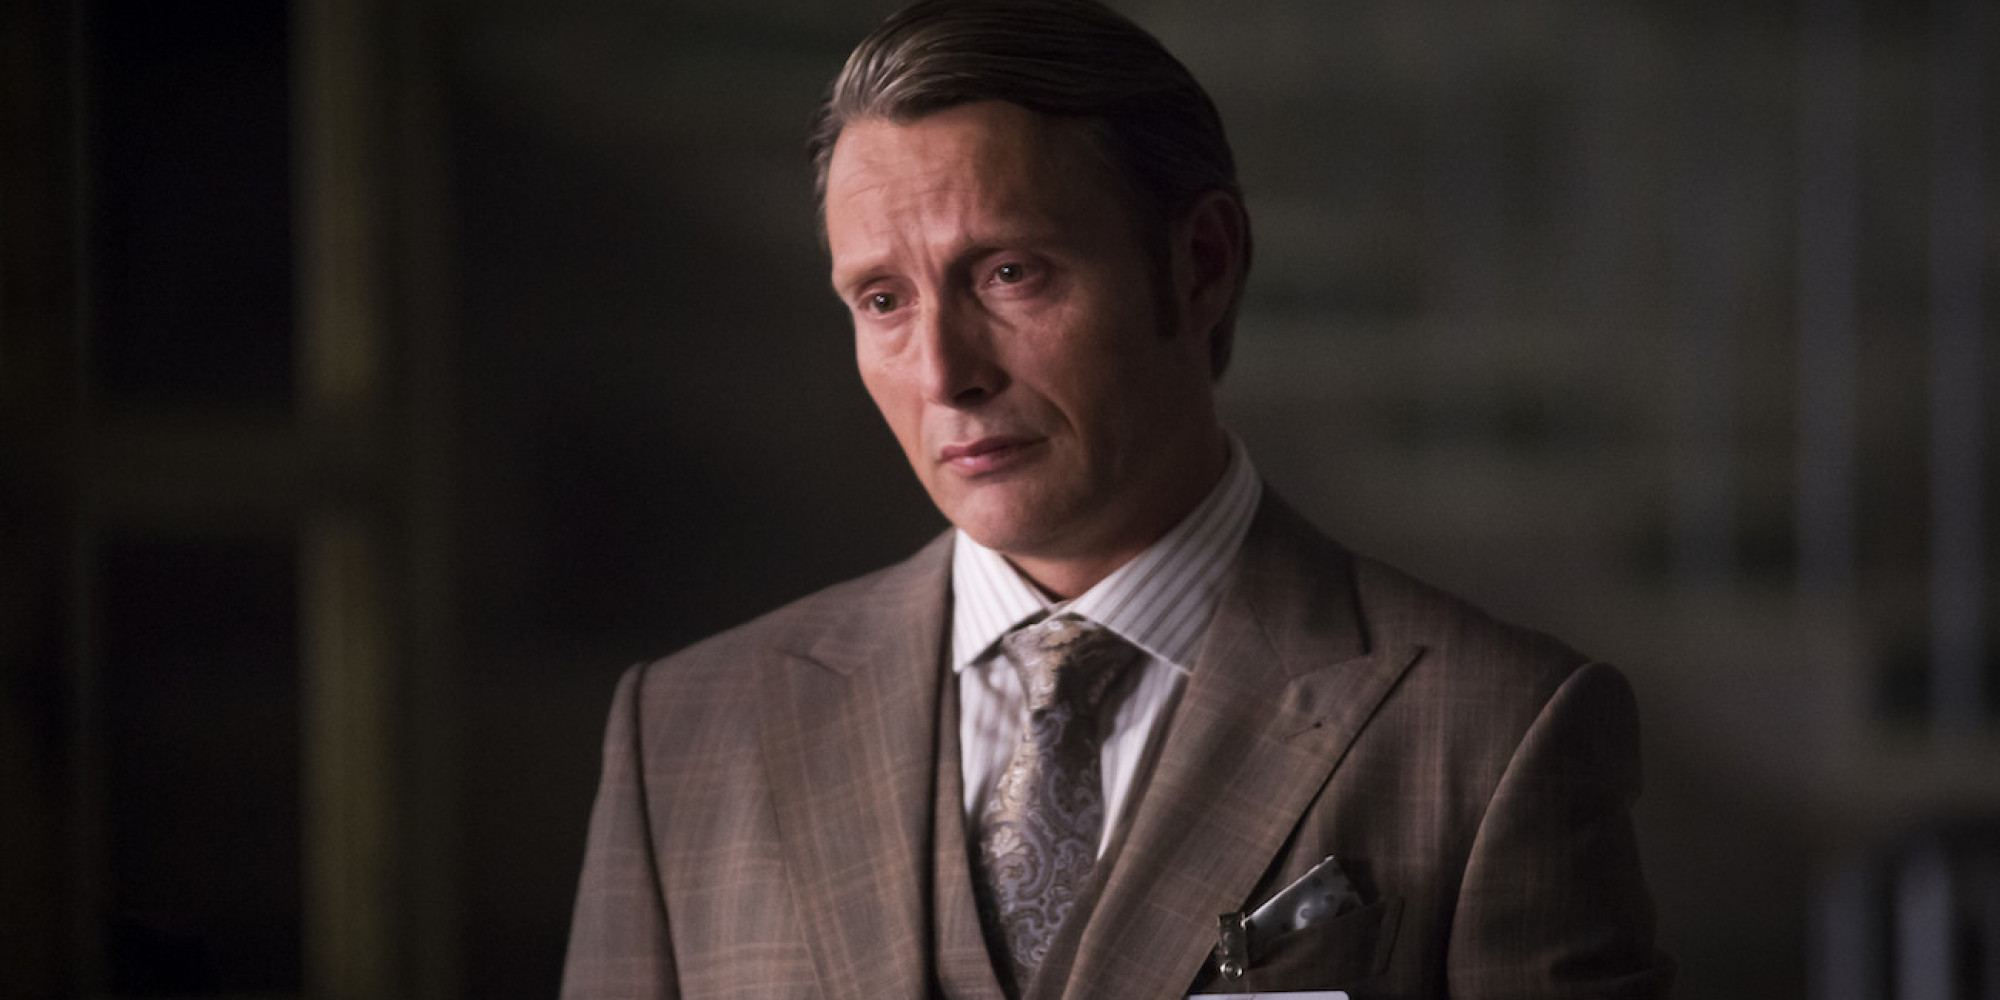 Mads Mikkelsen On 'Hannibal' Season 2, That Shocking